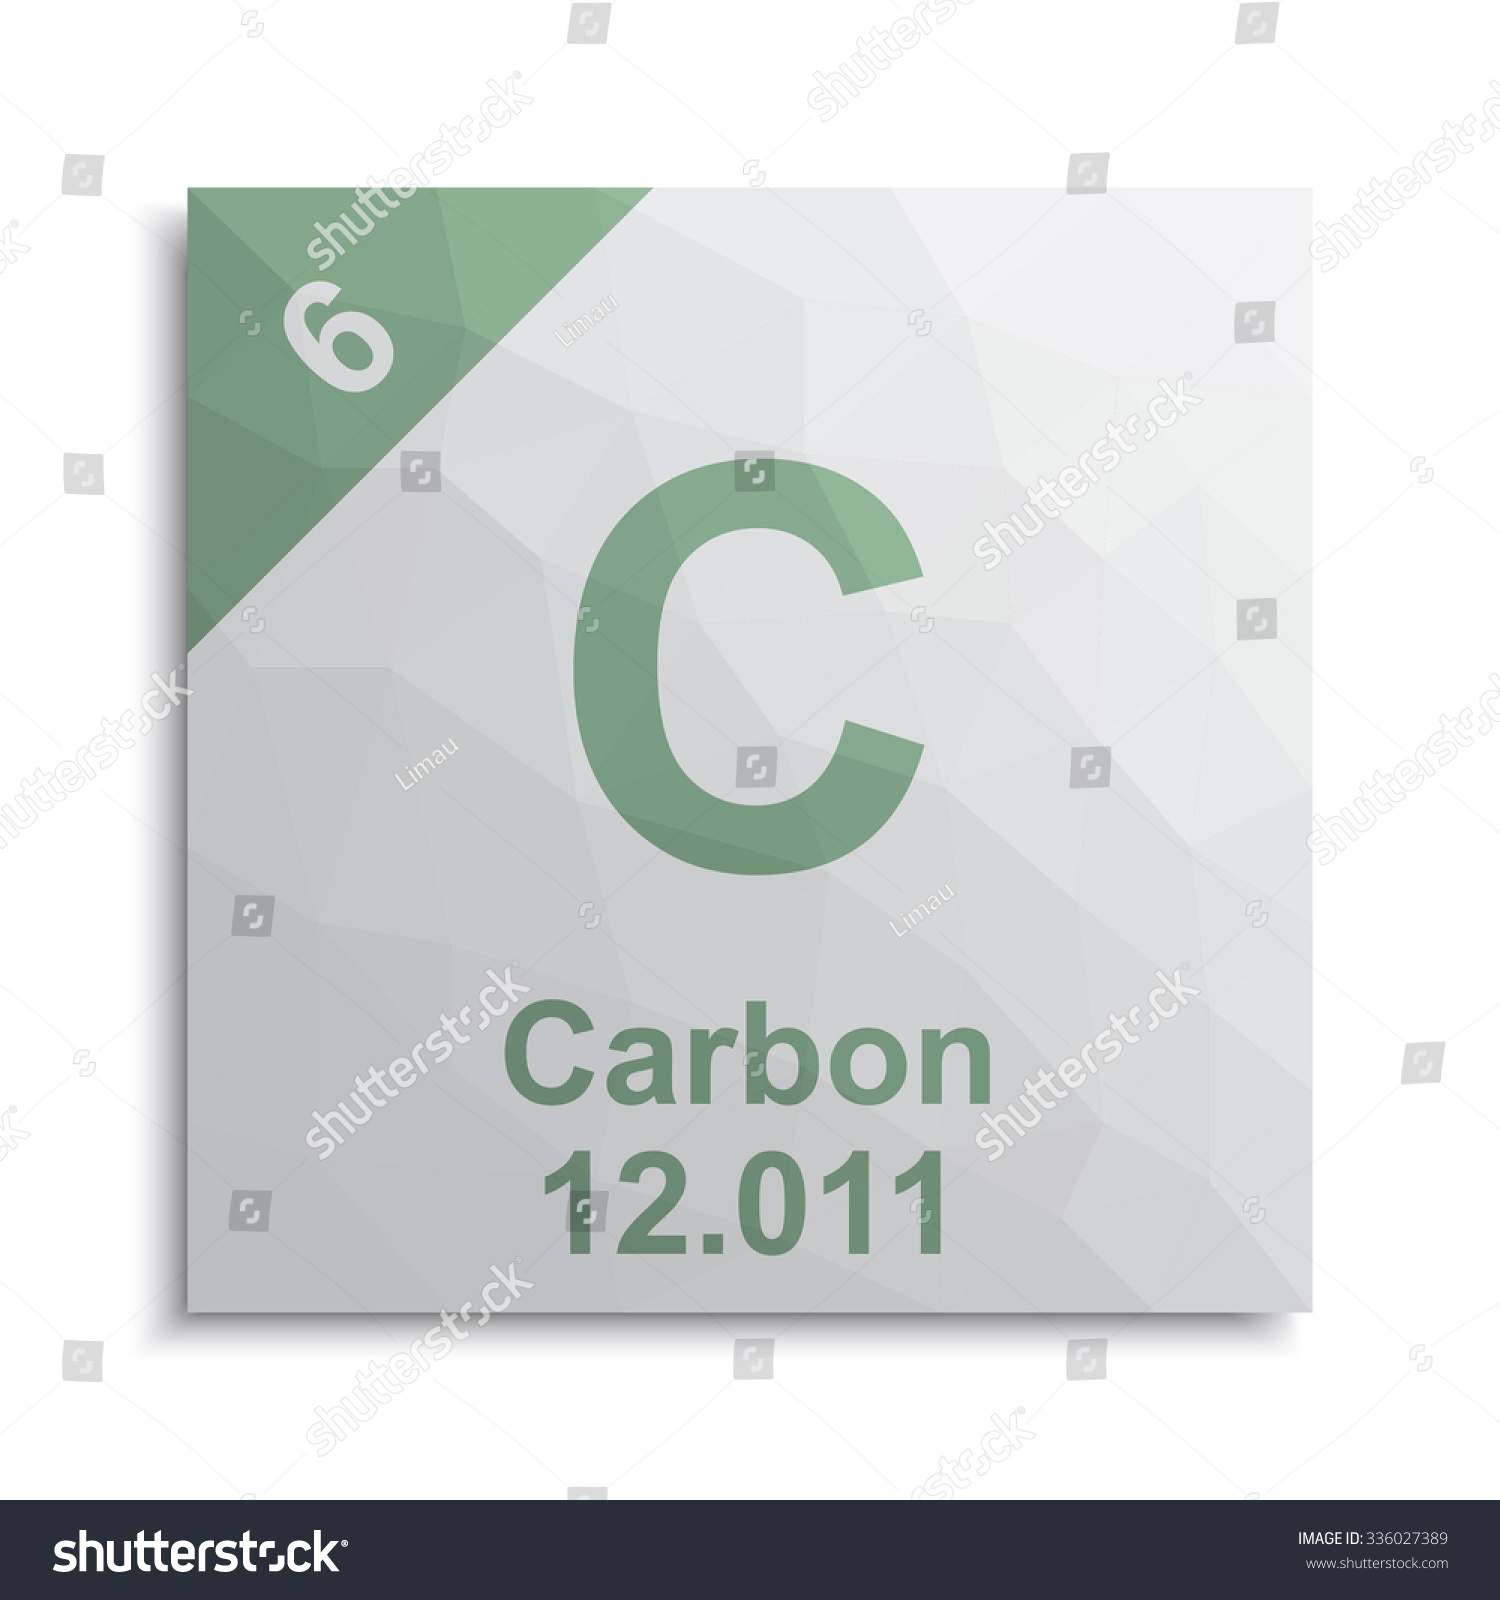 Carbon element periodic table stock vector 336027389 shutterstock carbon element periodic table gamestrikefo Gallery